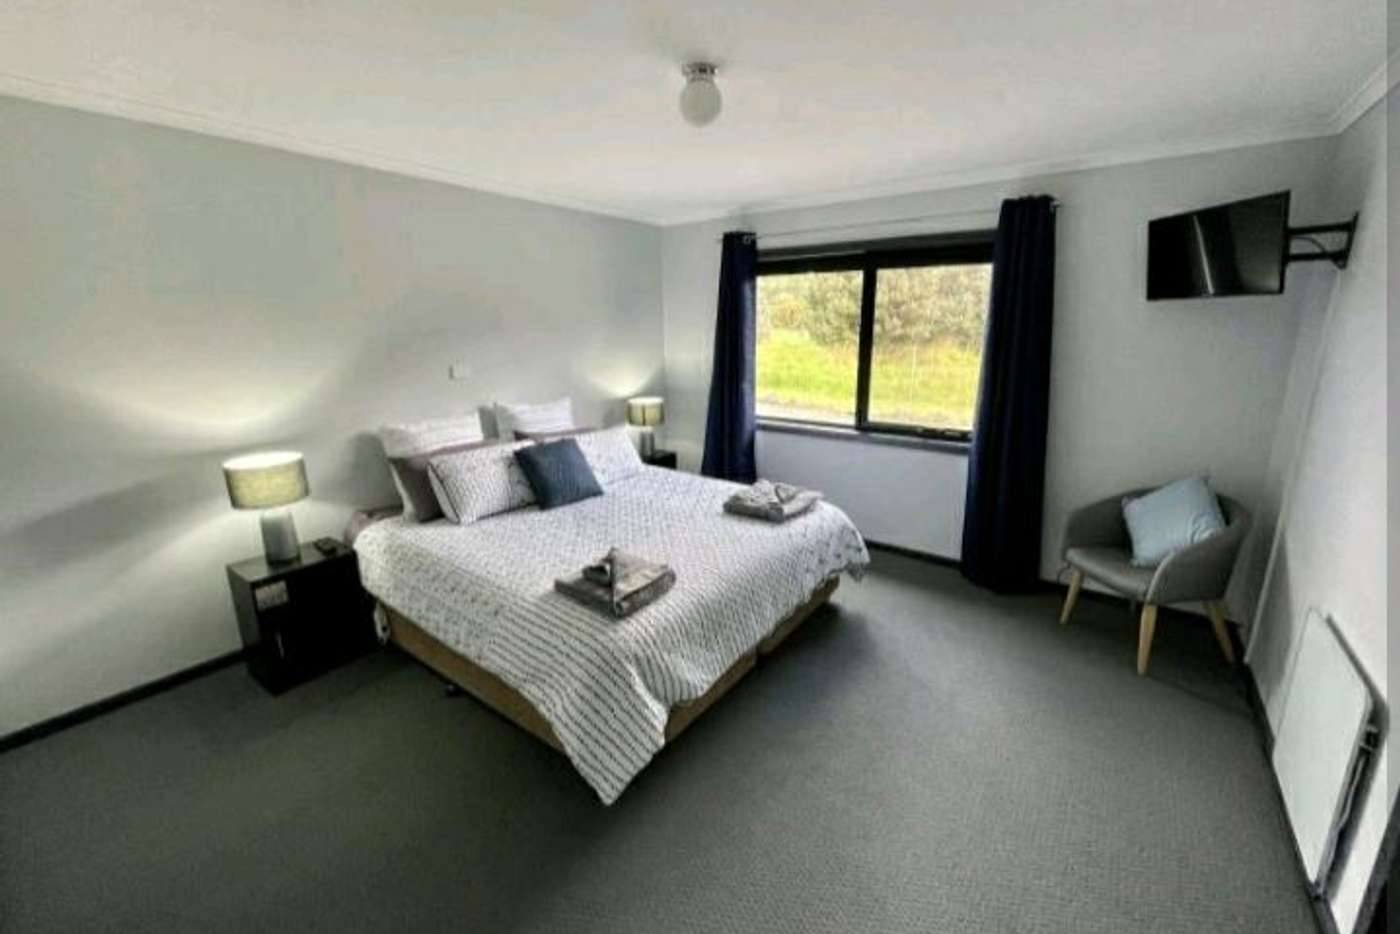 Seventh view of Homely house listing, 2 Irwell St, Zeehan TAS 7469